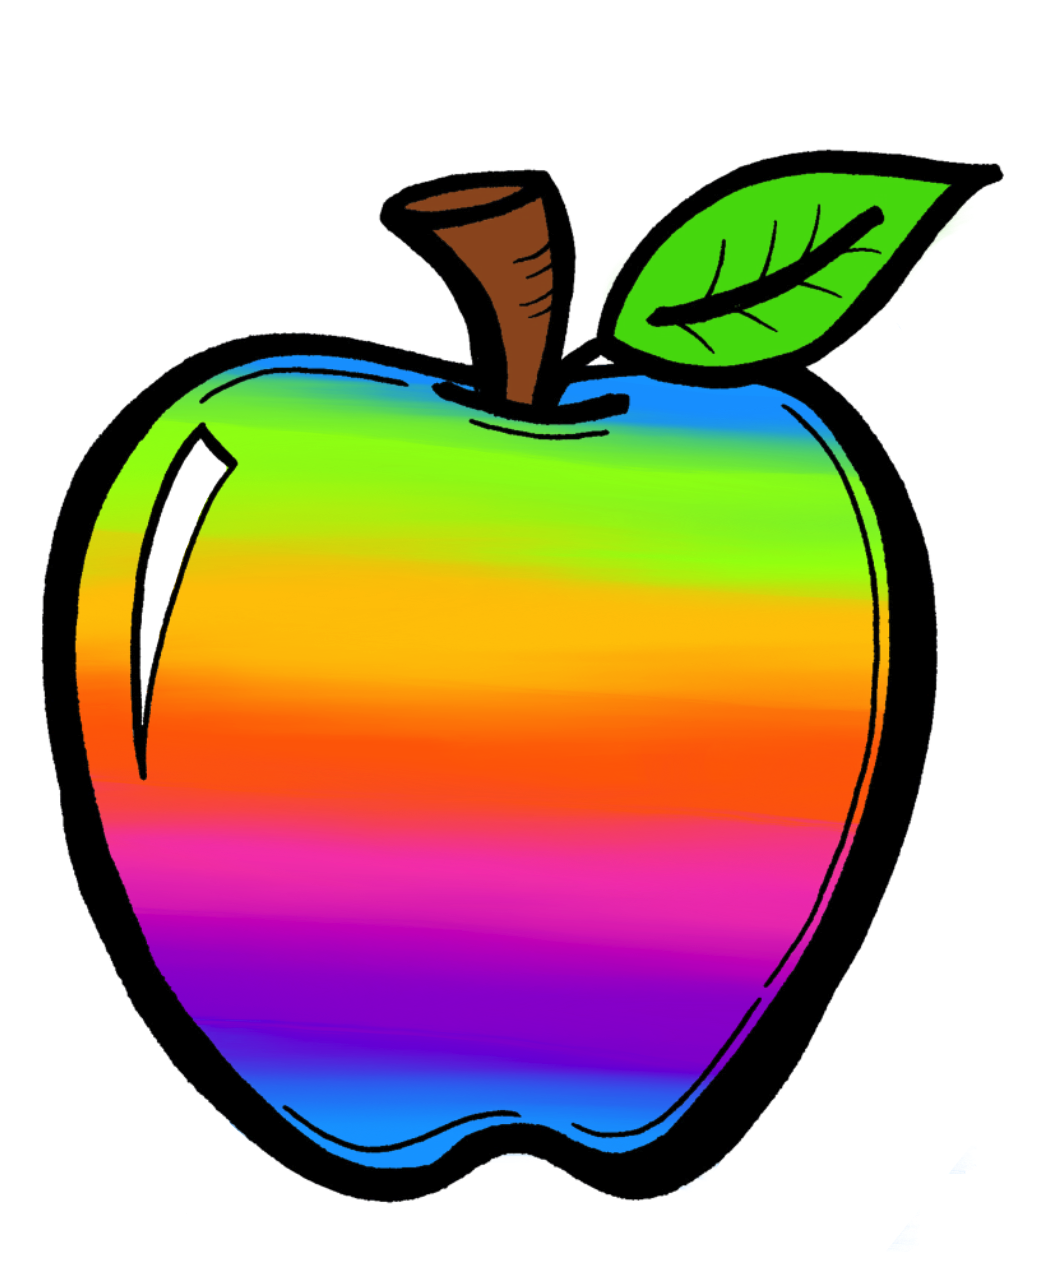 1050x1274 Apples Clipart, Suggestions For Apples Clipart, Download Apples